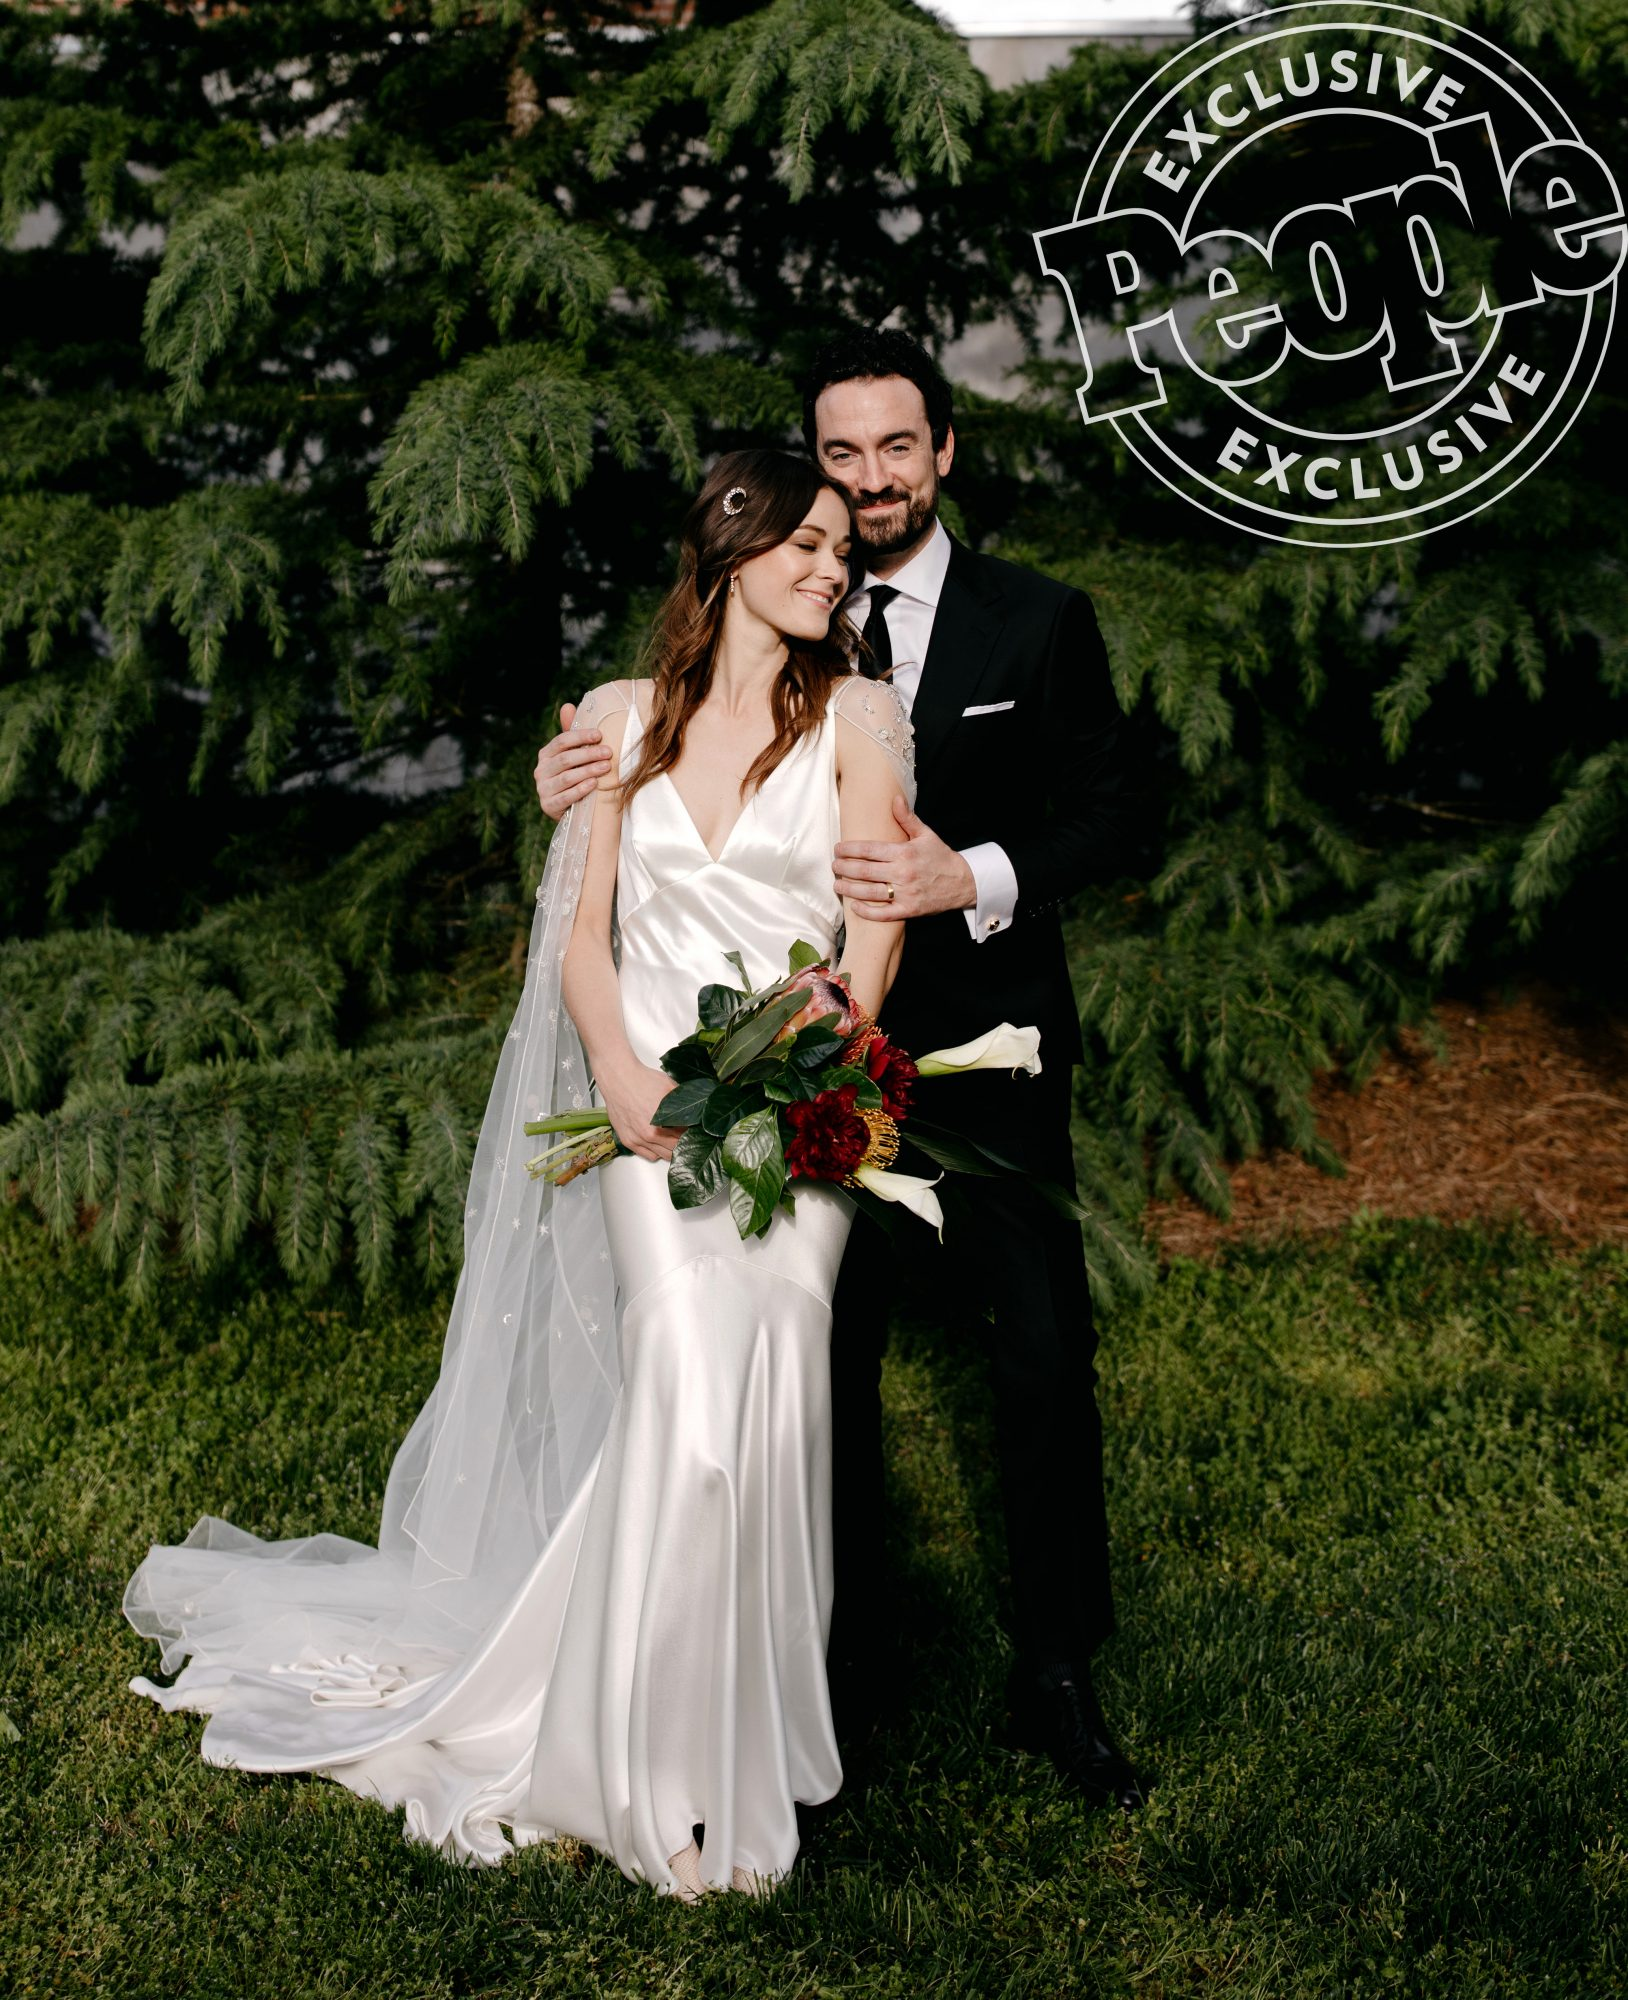 Jillian Jacqueline and Bryan Brown wedding